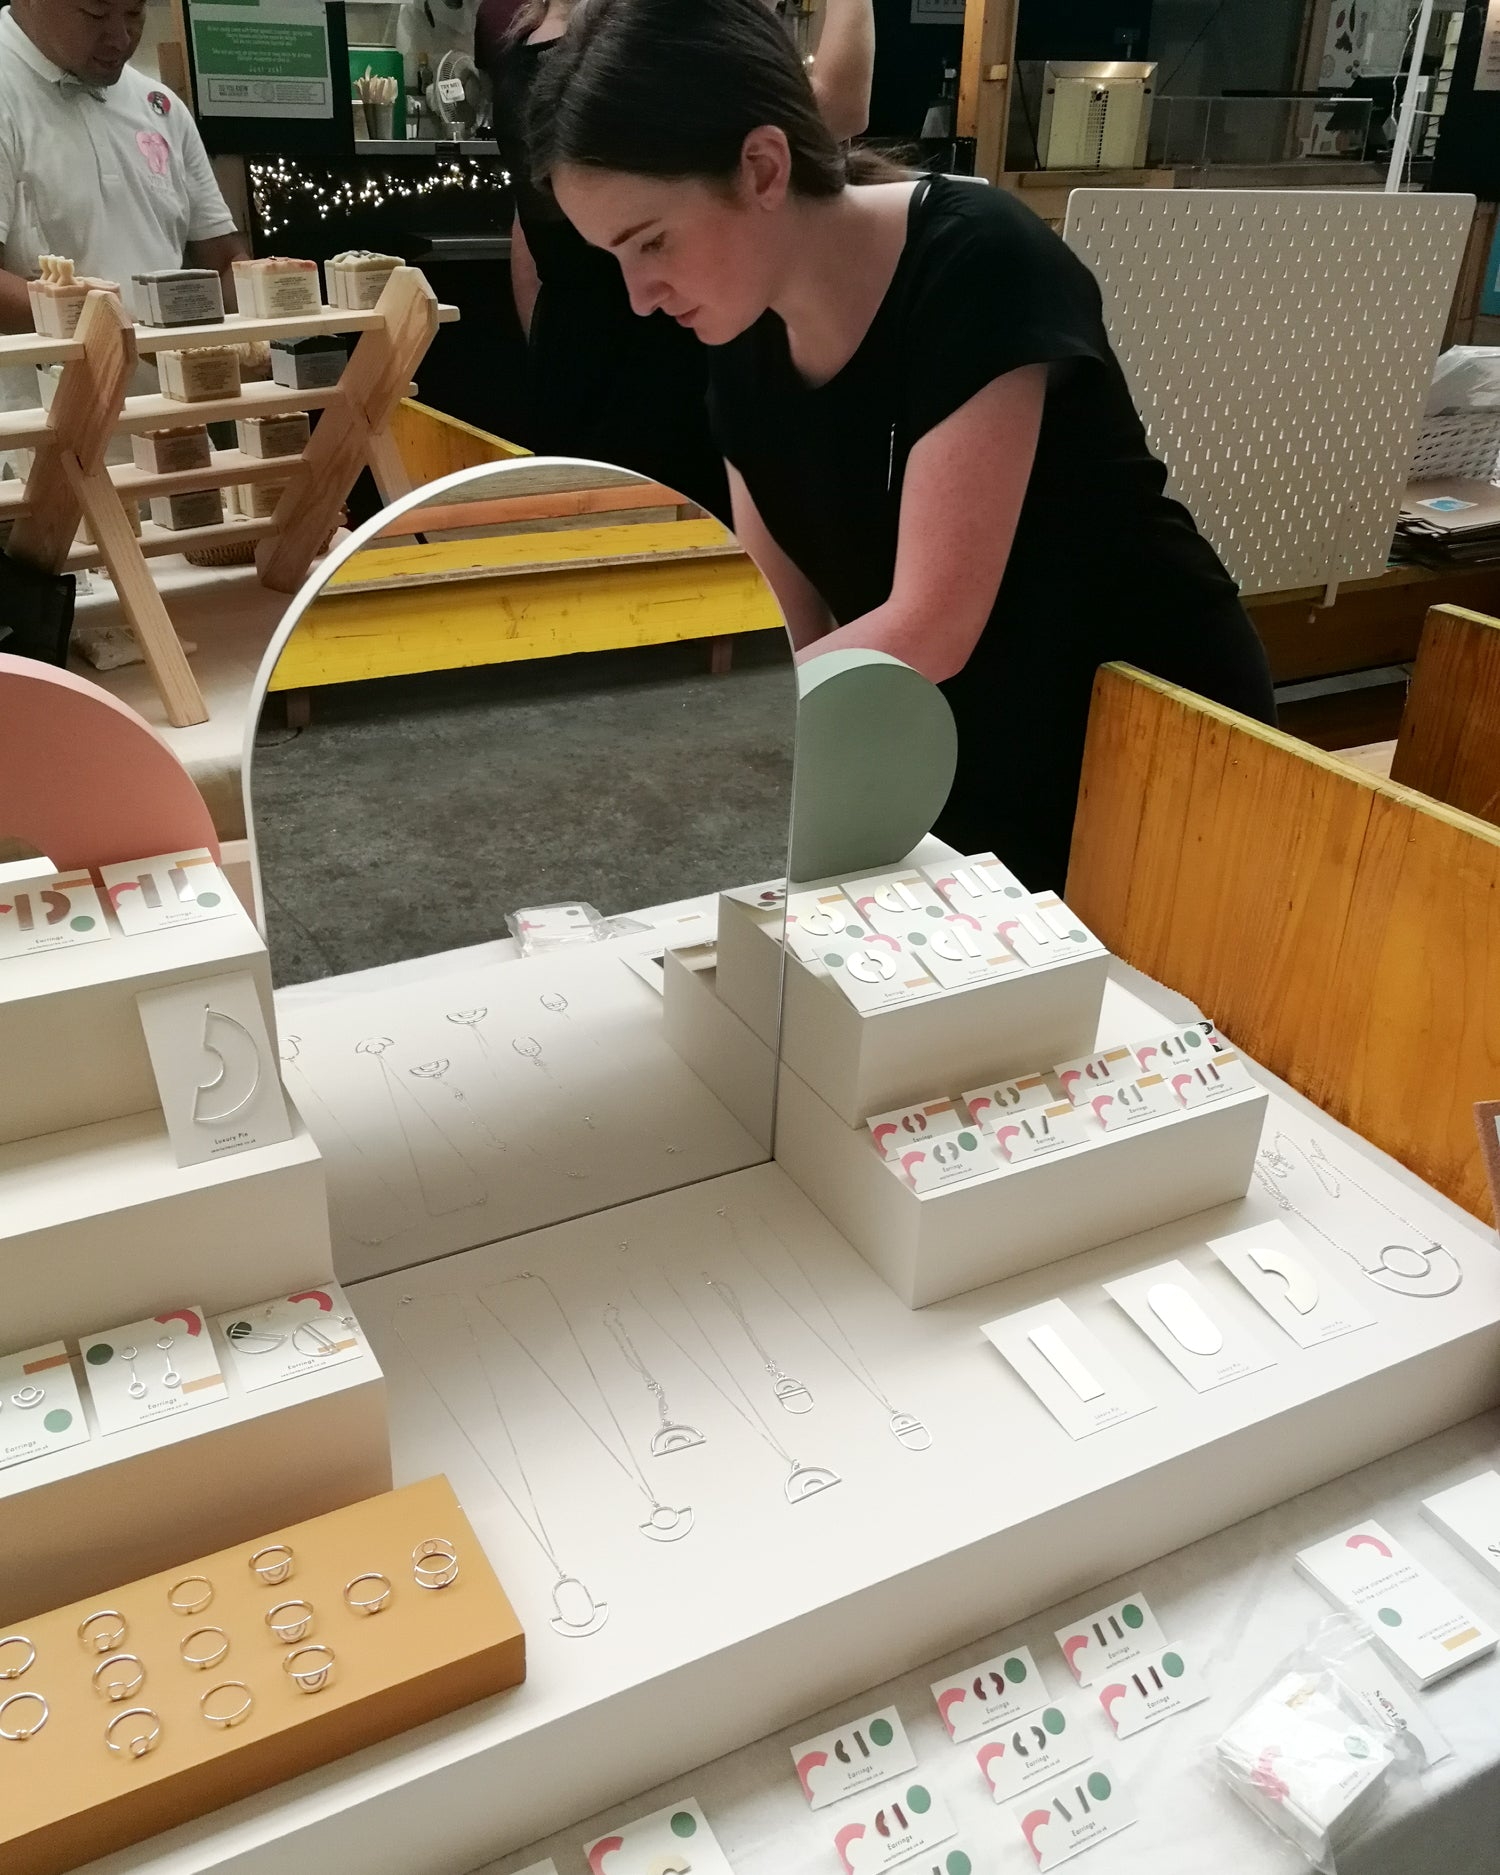 Searlait from Today jewellery setting up craft fair display at Crafty Fox in London